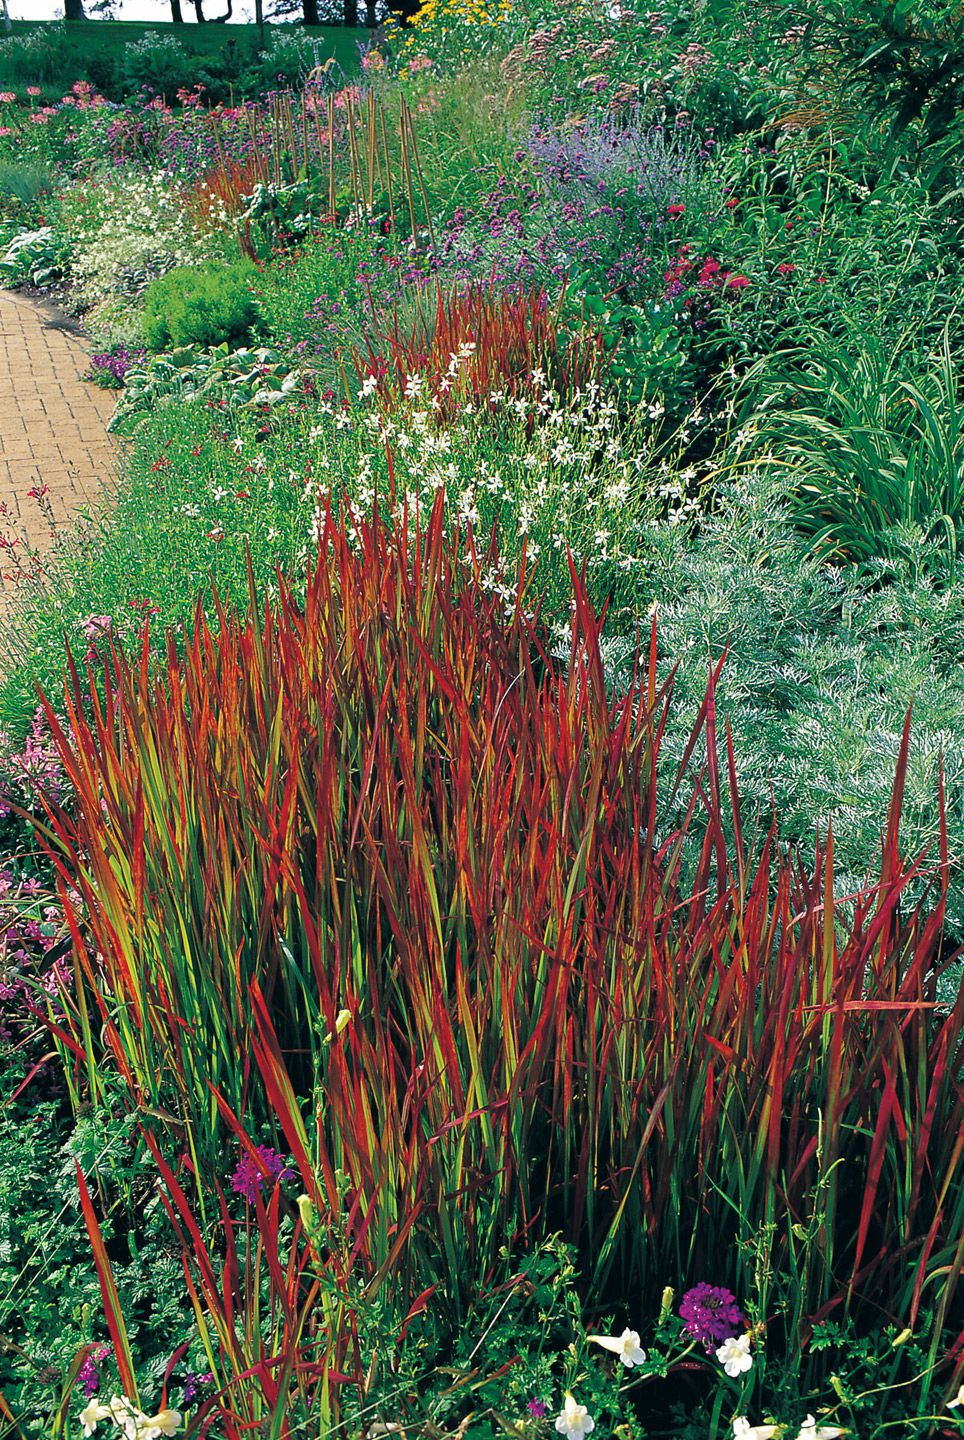 Zebra Chinaschilf Miscanthus Sinensis Zebrinus Garten U Love The Japanese Blood Grass Great Color Without A Lot Of Work